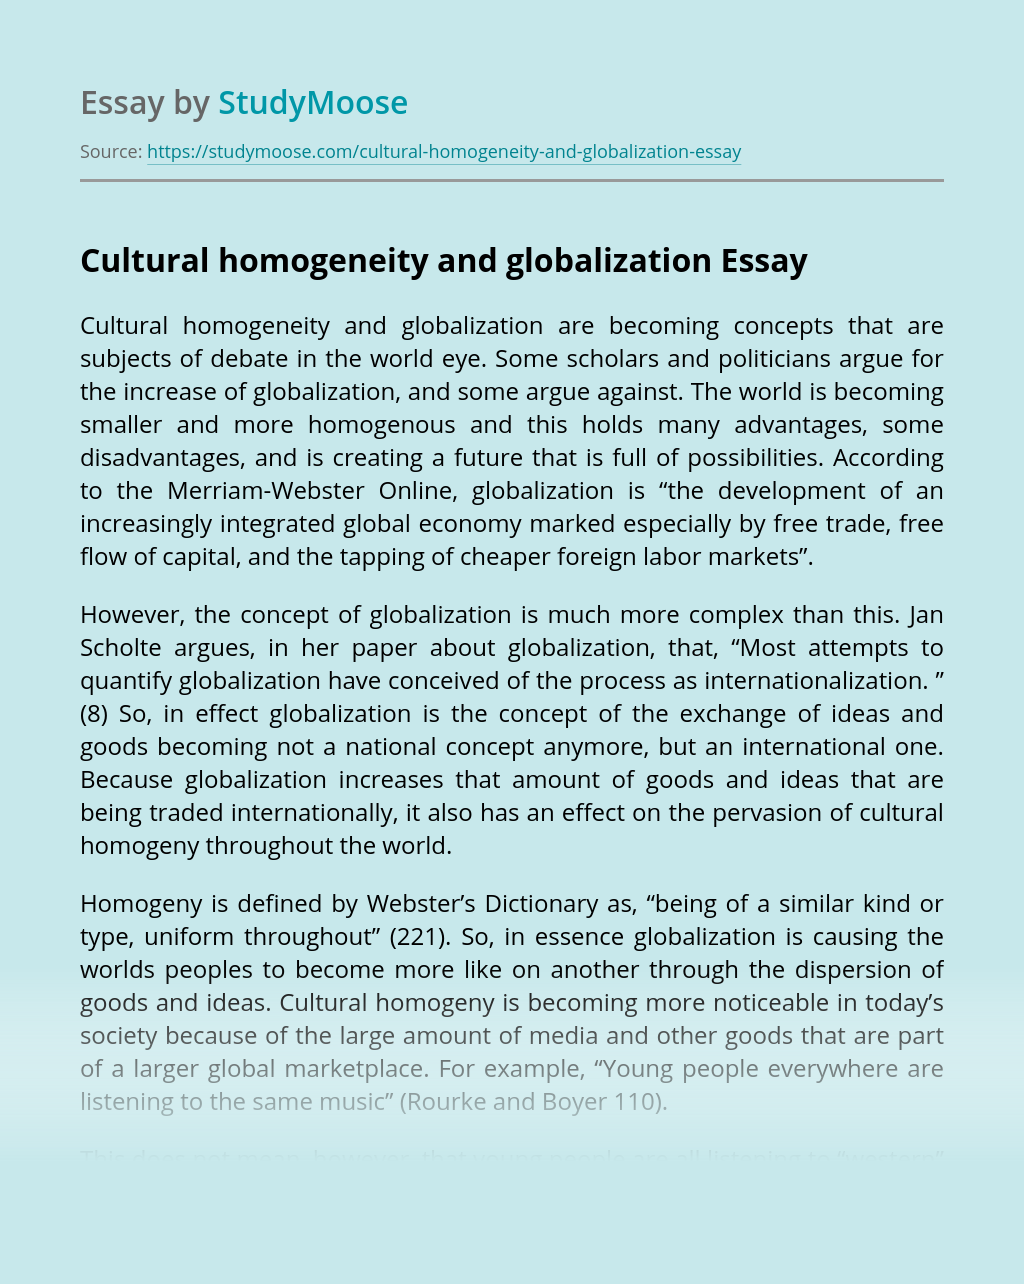 Cultural homogeneity and globalization